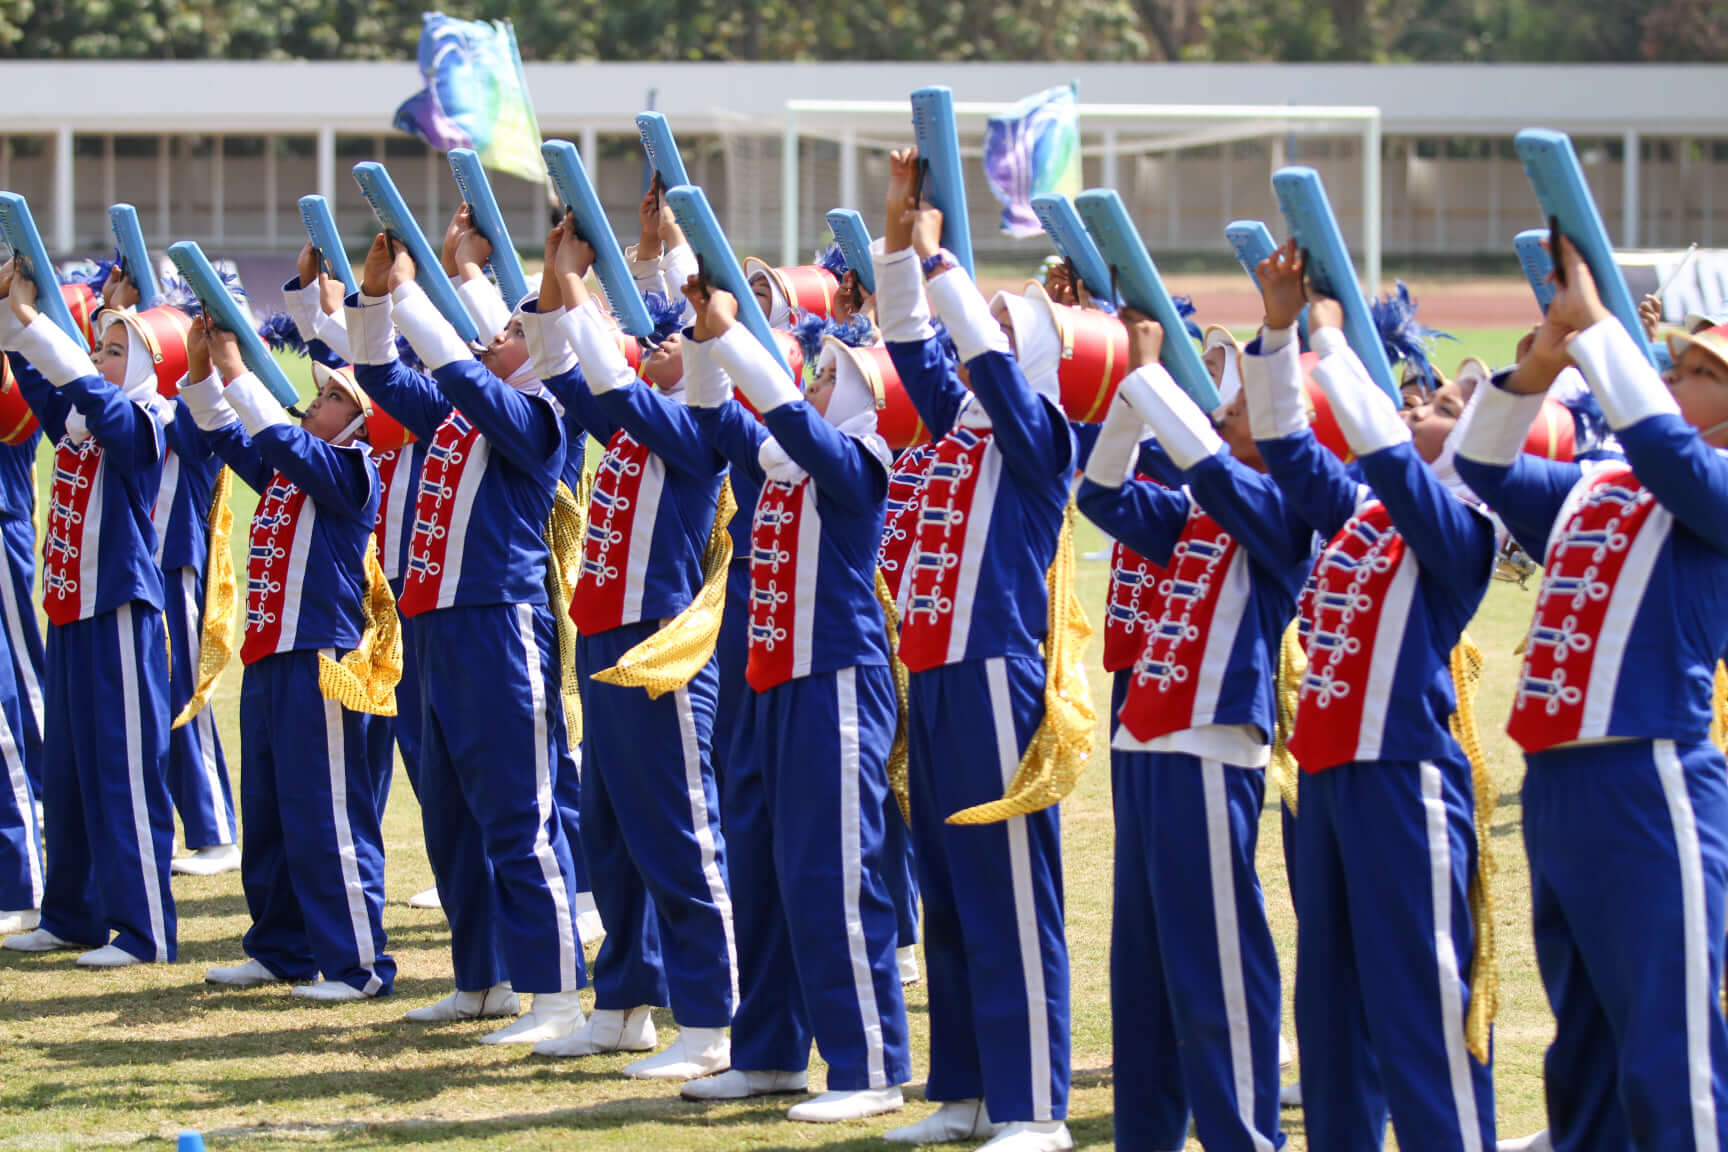 2019 Indonesian Drum Corps Championships